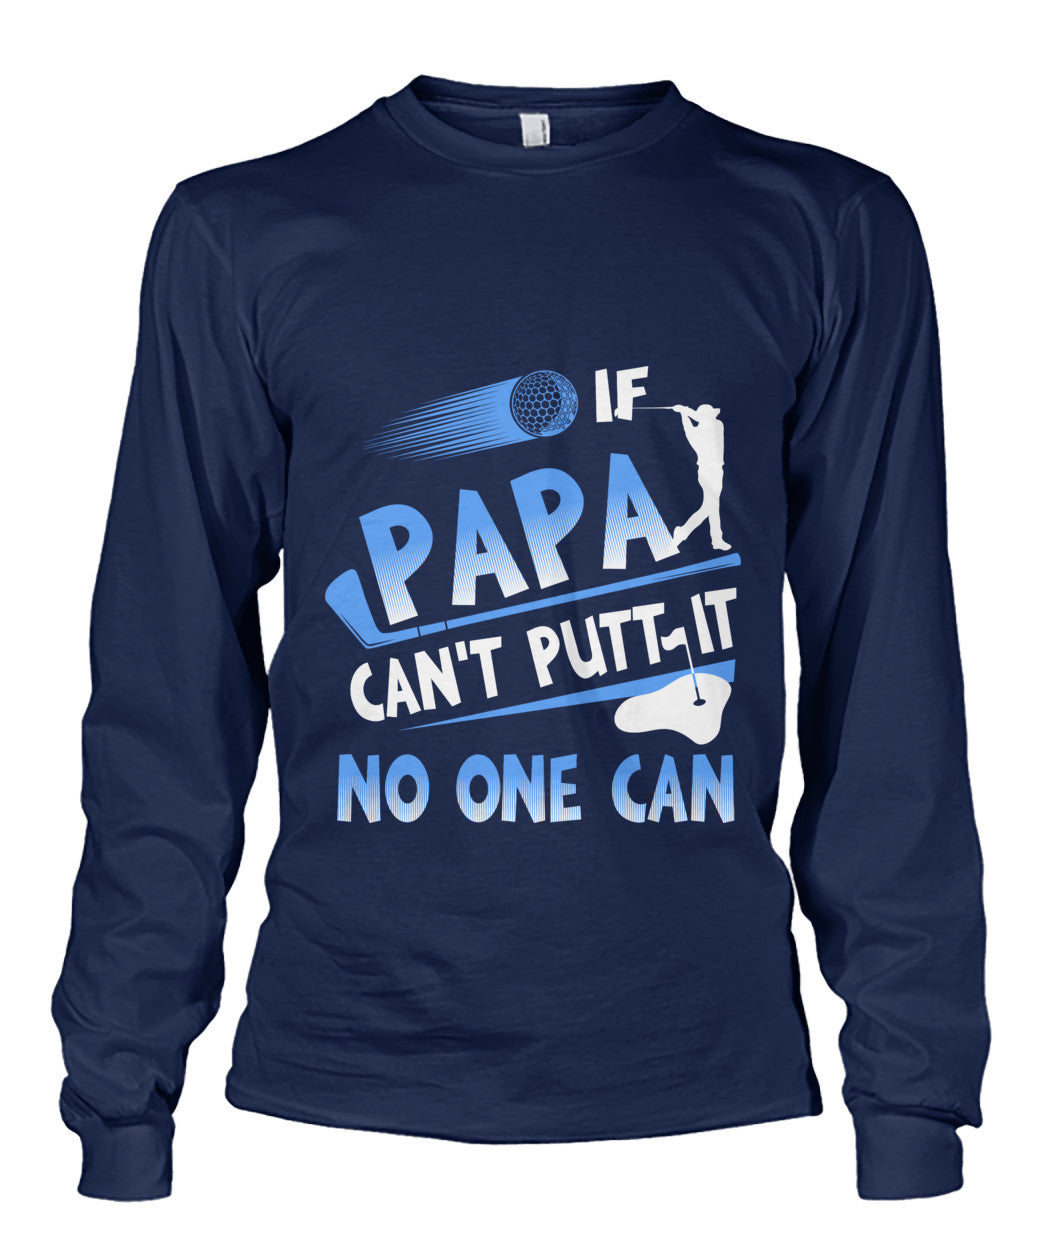 If Papa can't putt it no one can shirt